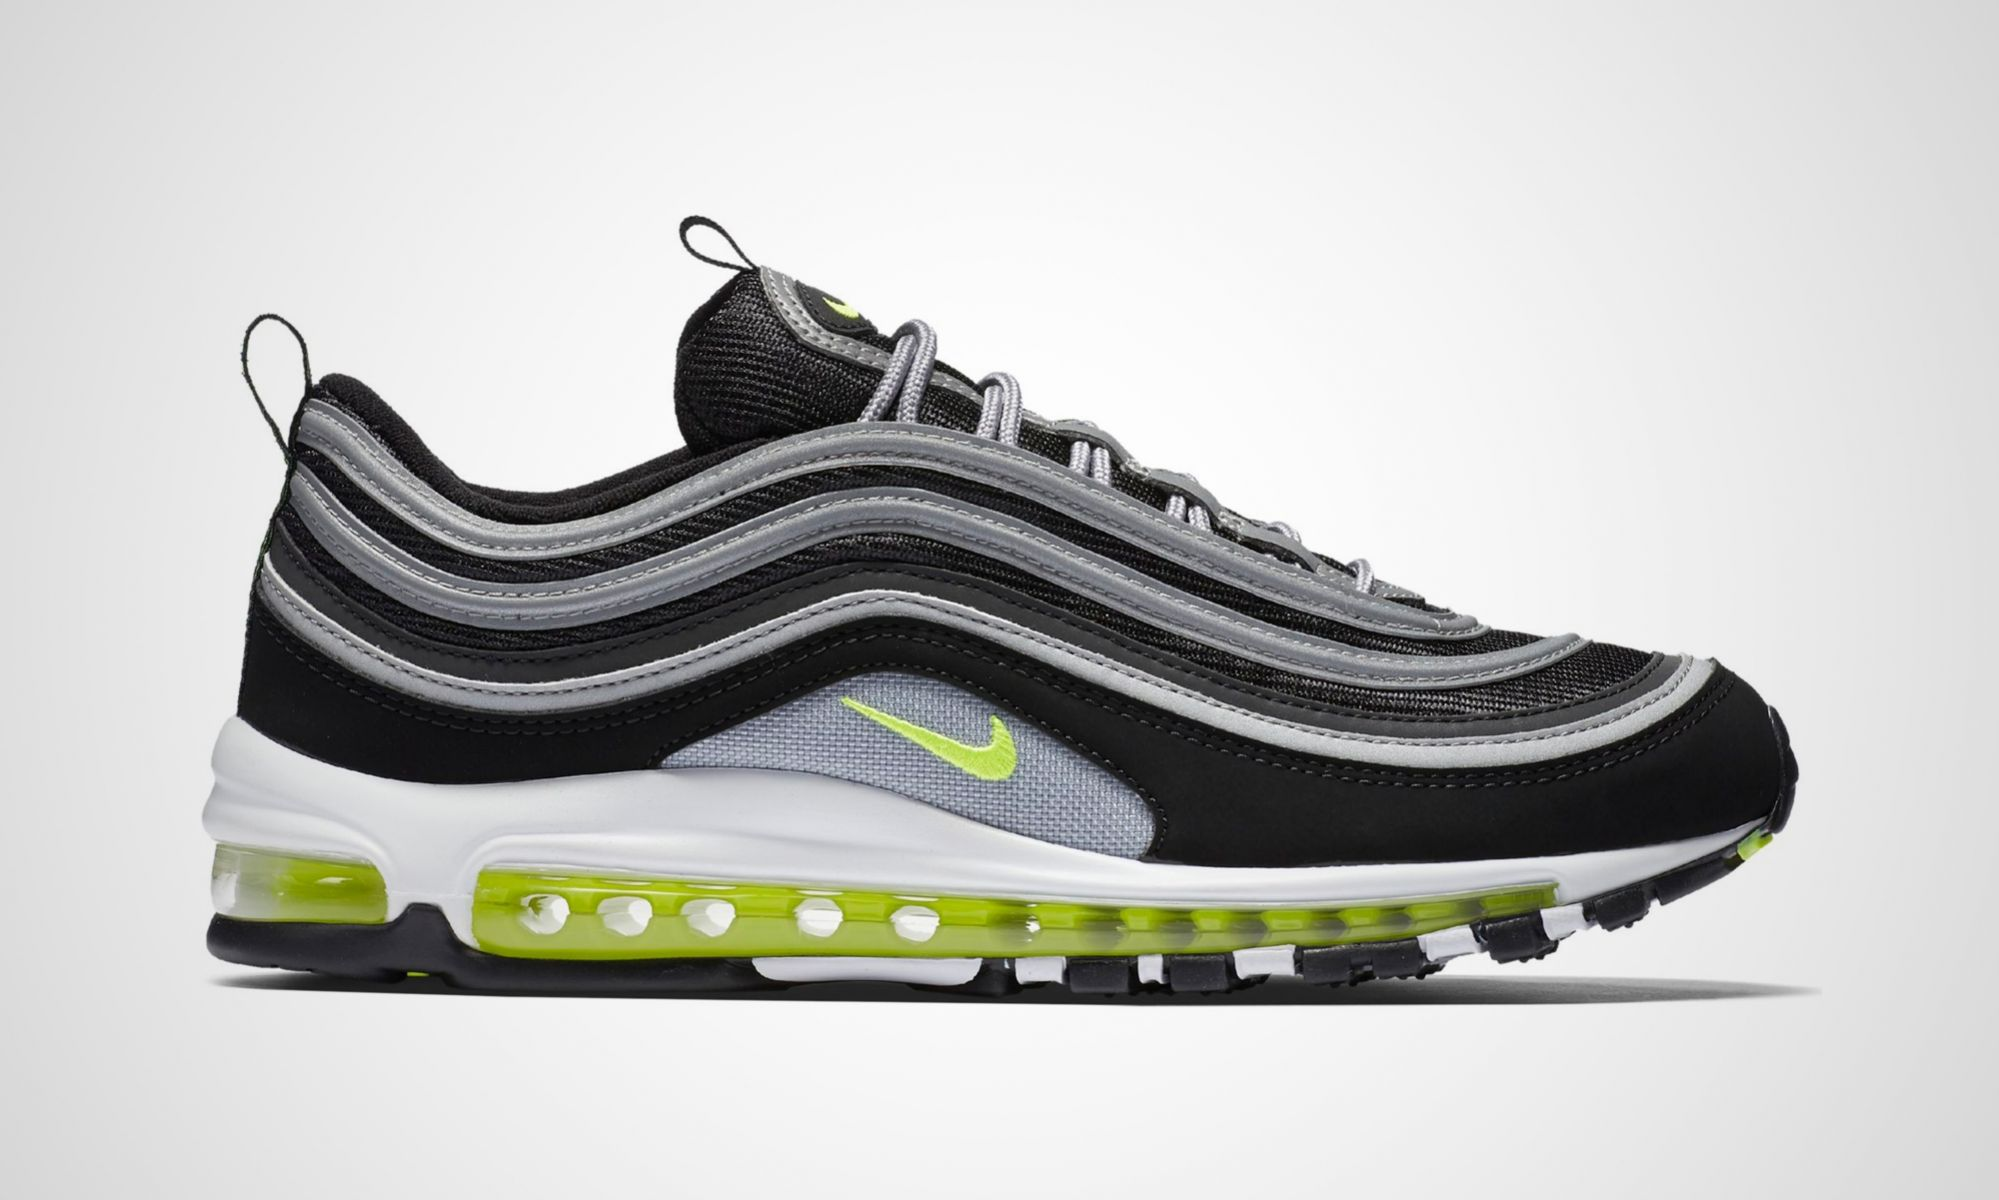 nike air max 97 black volt dead stock sneakerblog. Black Bedroom Furniture Sets. Home Design Ideas